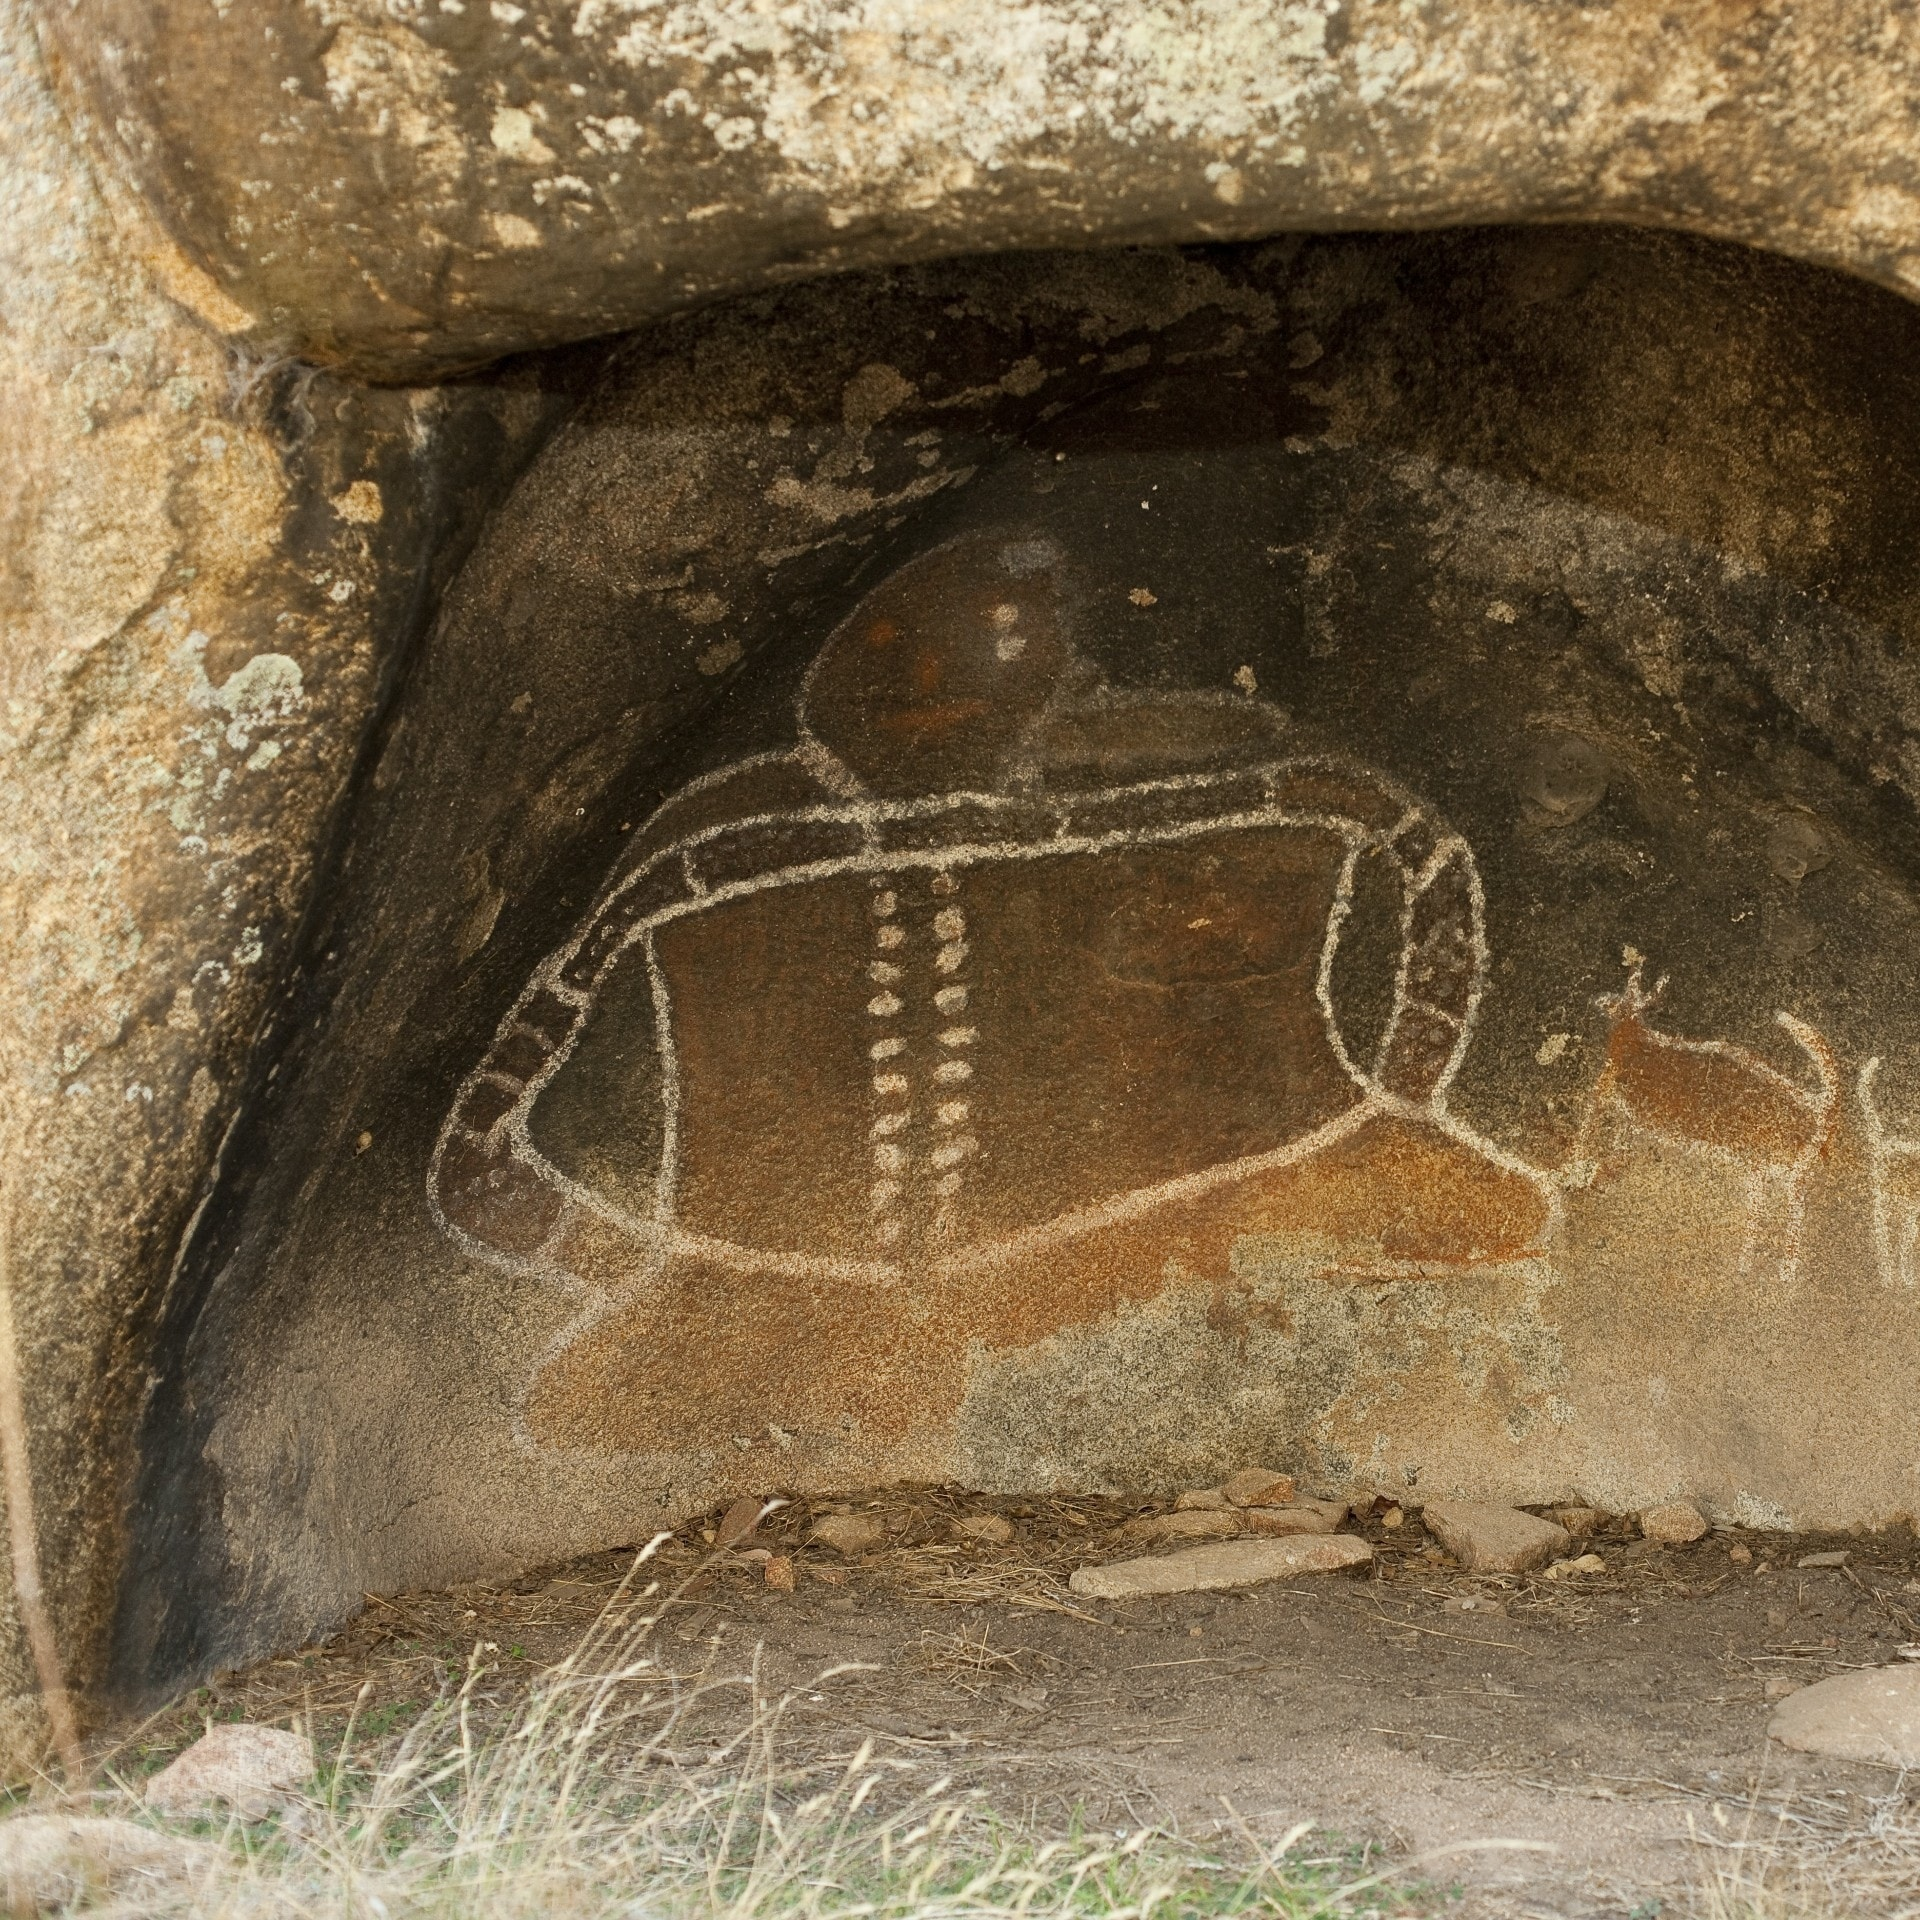 Rock art at Bunjil Shelter, Grampians, VIC © Visit Victoria